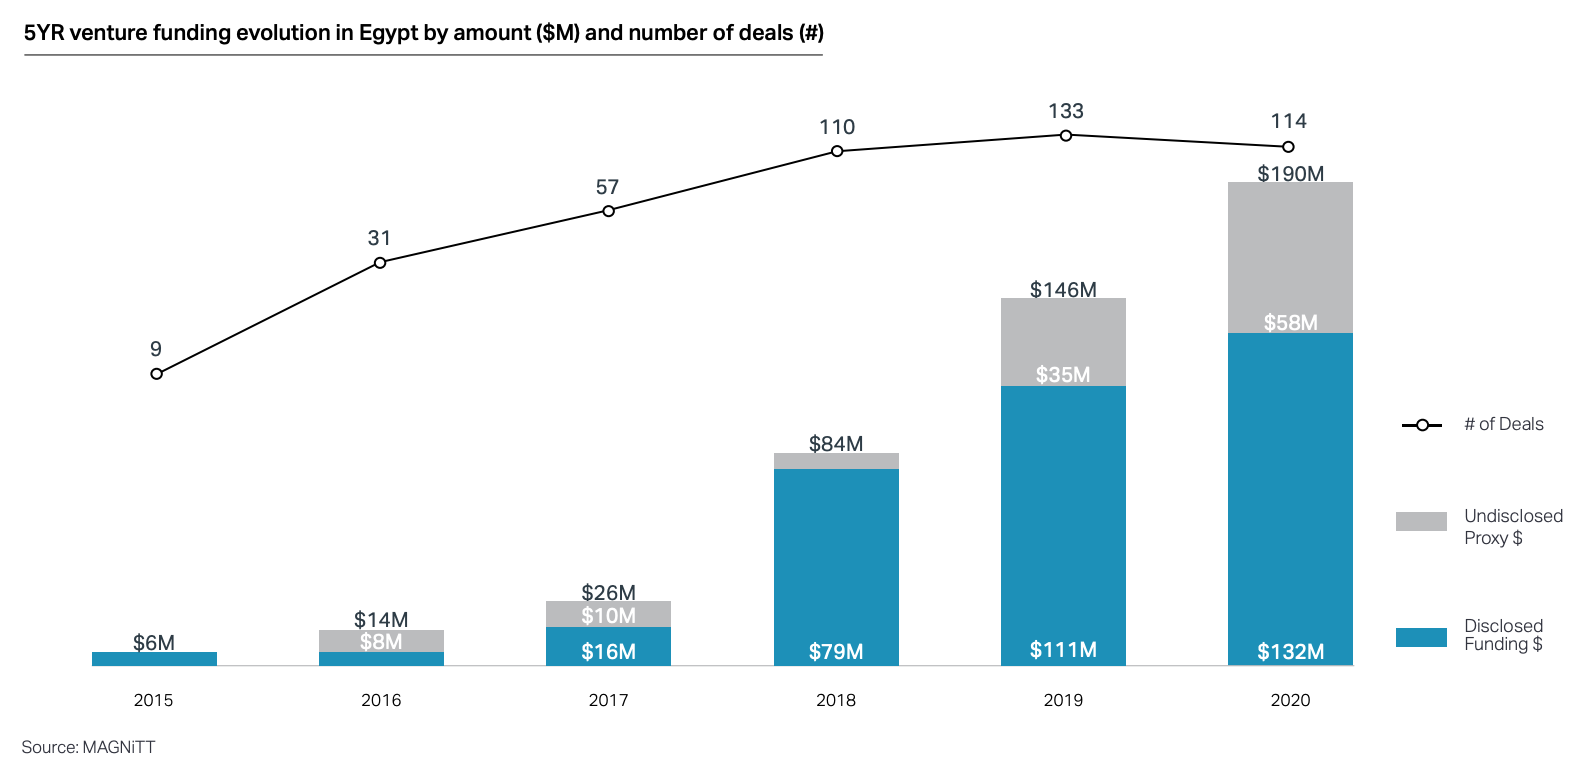 5YR venture funding evolution in Egypt by amount ($M) and number of deals (#), Source: Magnitt, May 2021